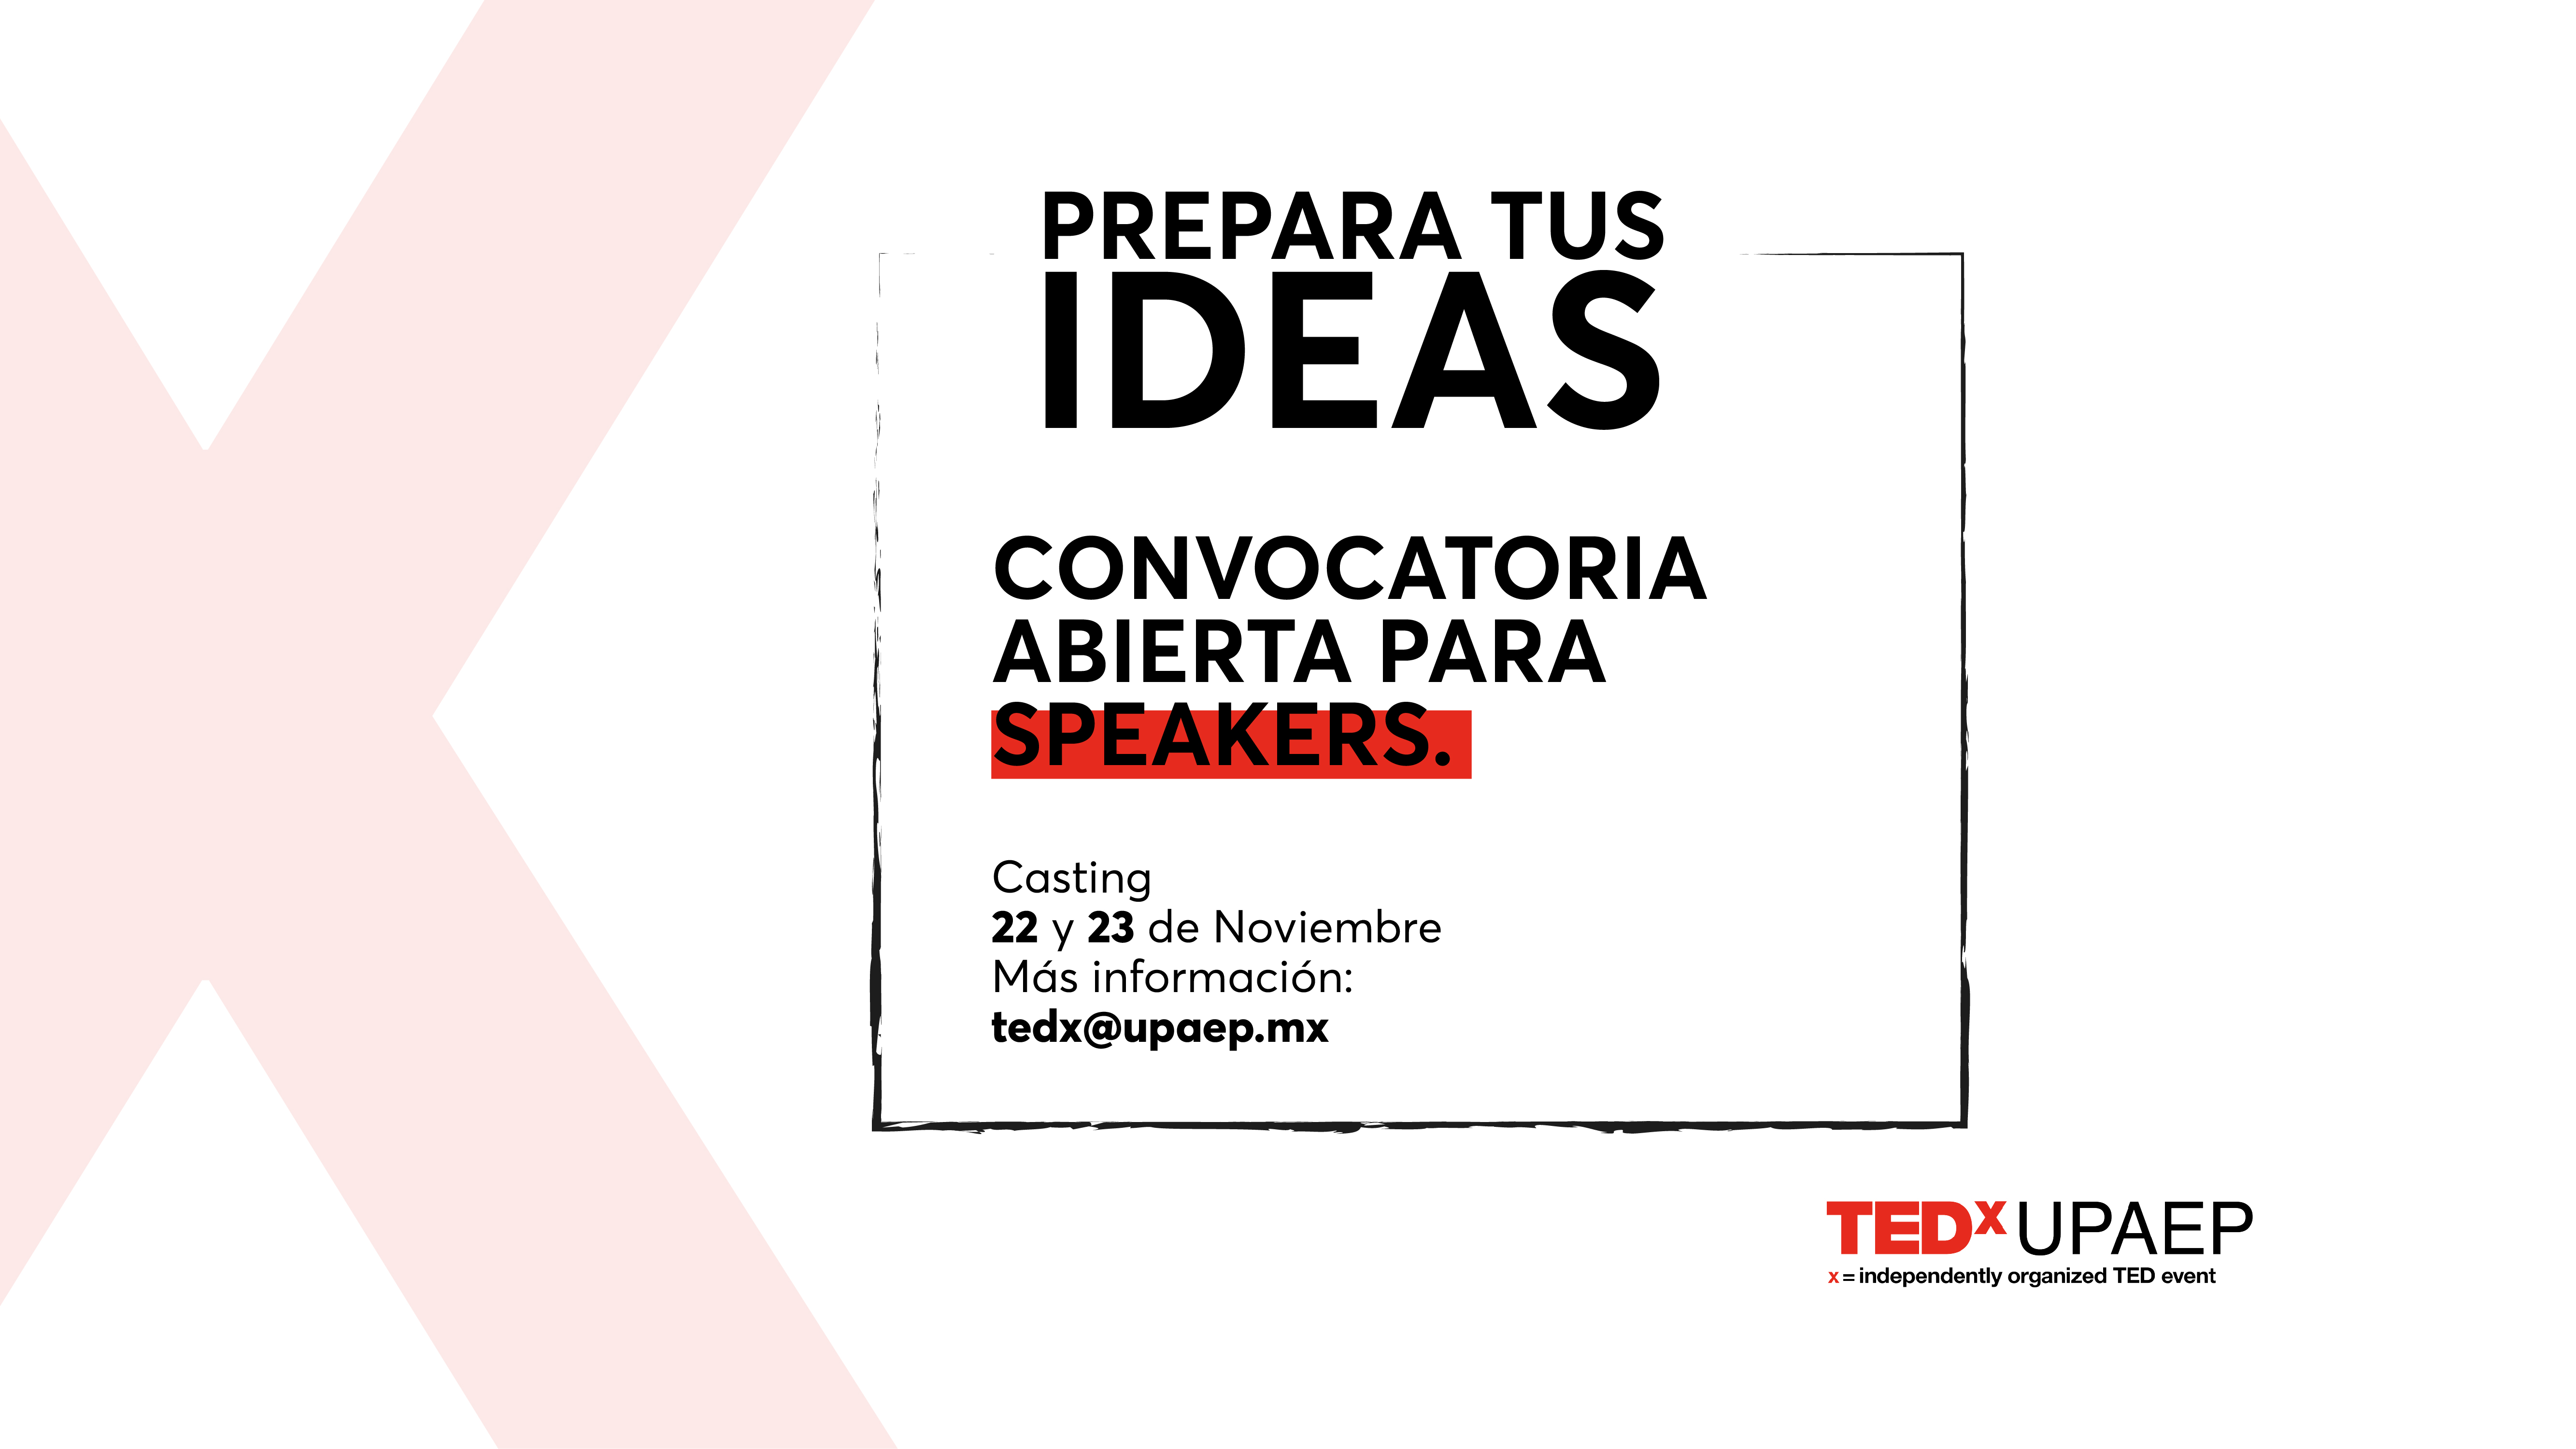 ted_2018_11_09